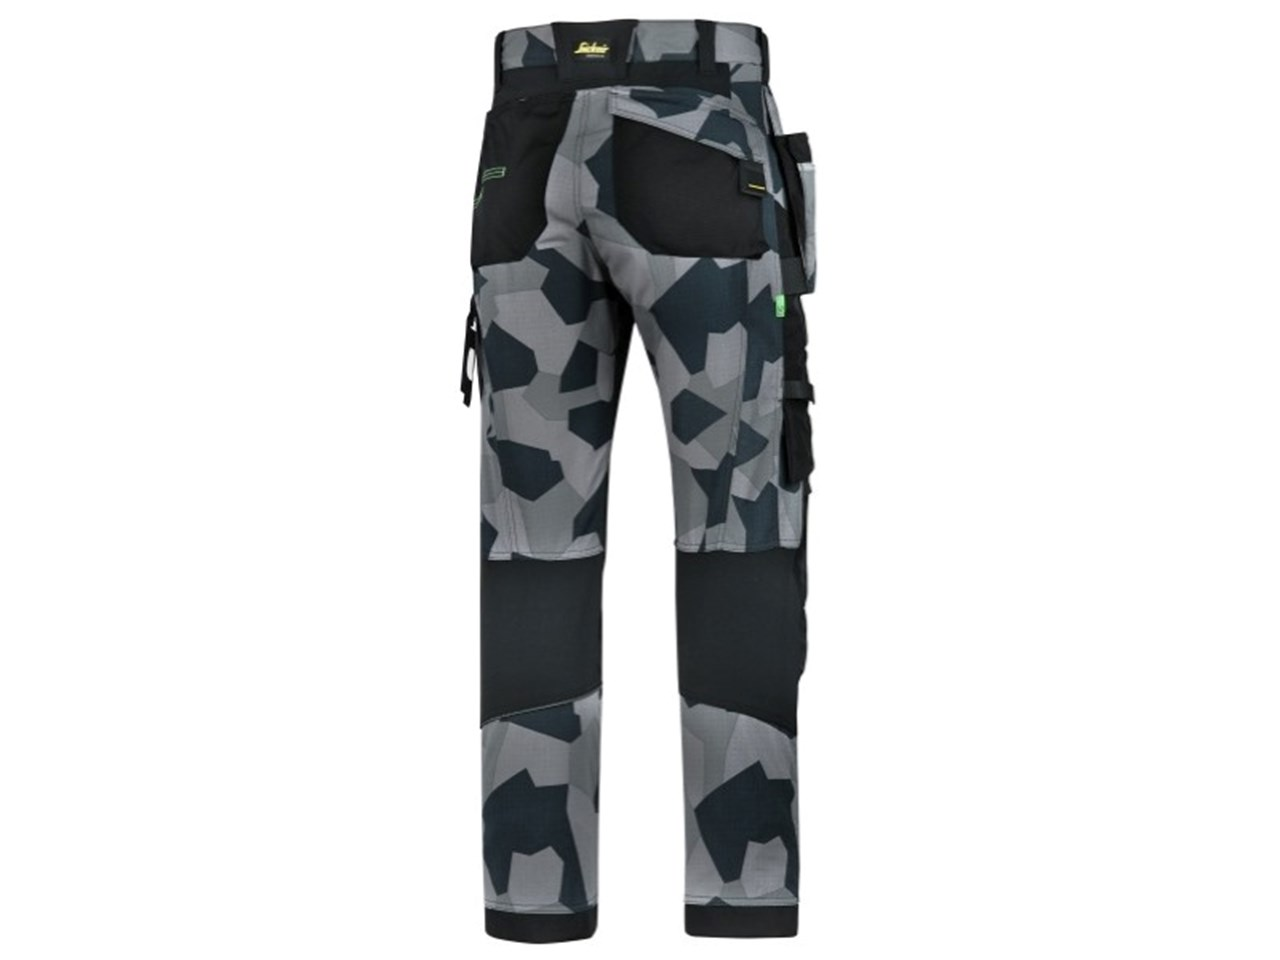 best selection of 2019 detailed pictures new release Snickers 69028704044 FlexiWork Work Trousers Camo 44 Grey 30R